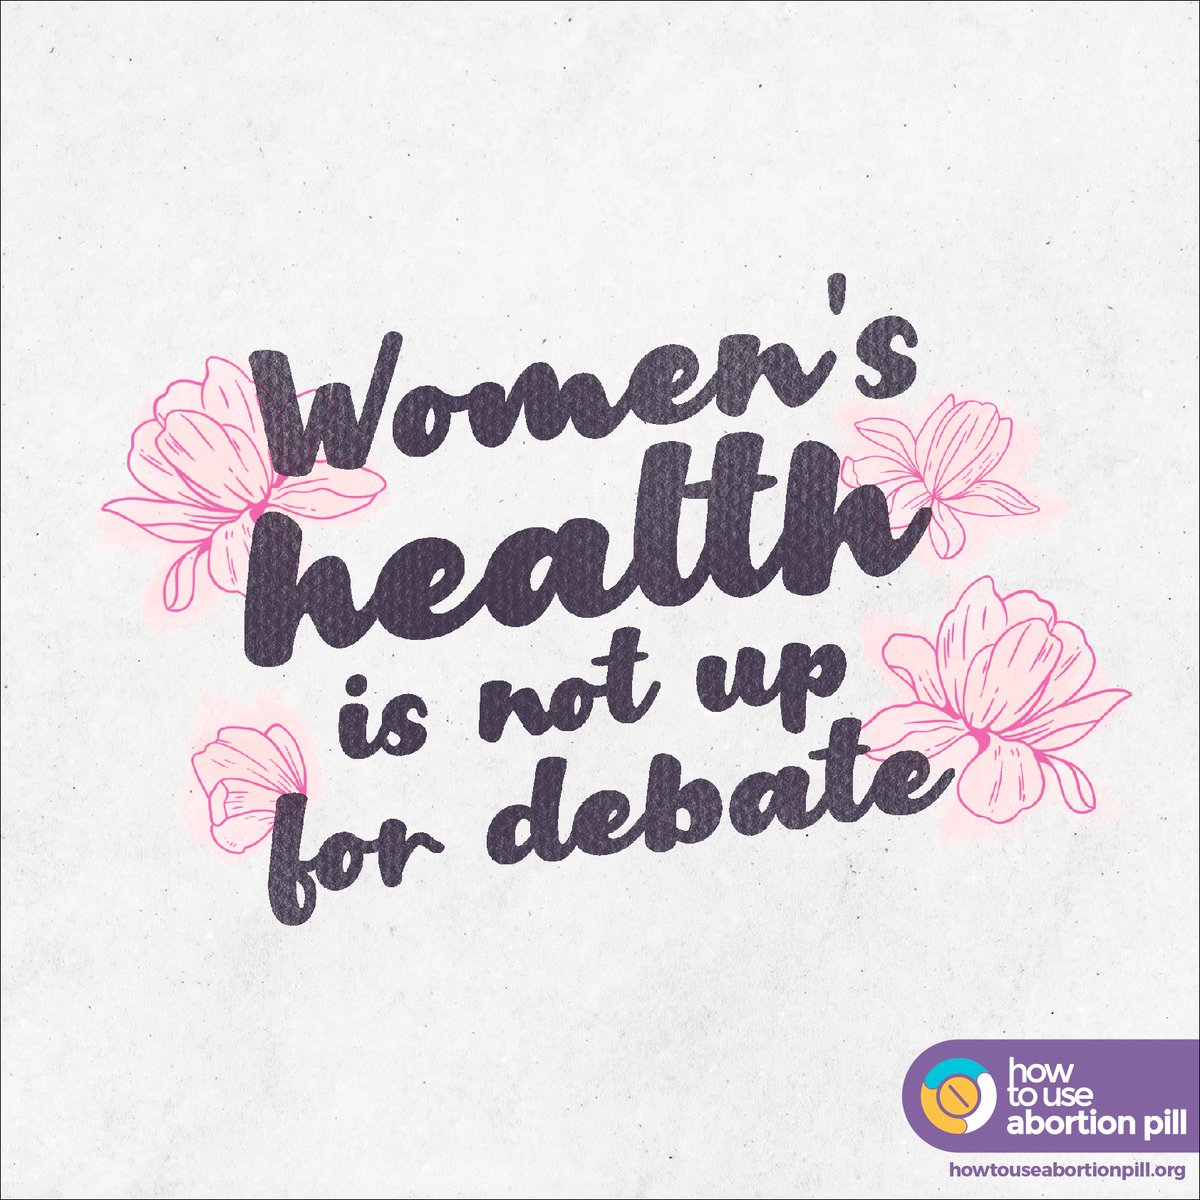 #AbortionRights are a matter of #healthcare. We cannot allow regressive laws and policies decide what goes on with our bodies. We decide that.   Let's take our health back in our hands. Start your journey here:  https://www. howtouseabortionpill.org       #internationaldayofactionforwomenshealth<br>http://pic.twitter.com/vAs3HeUwGF